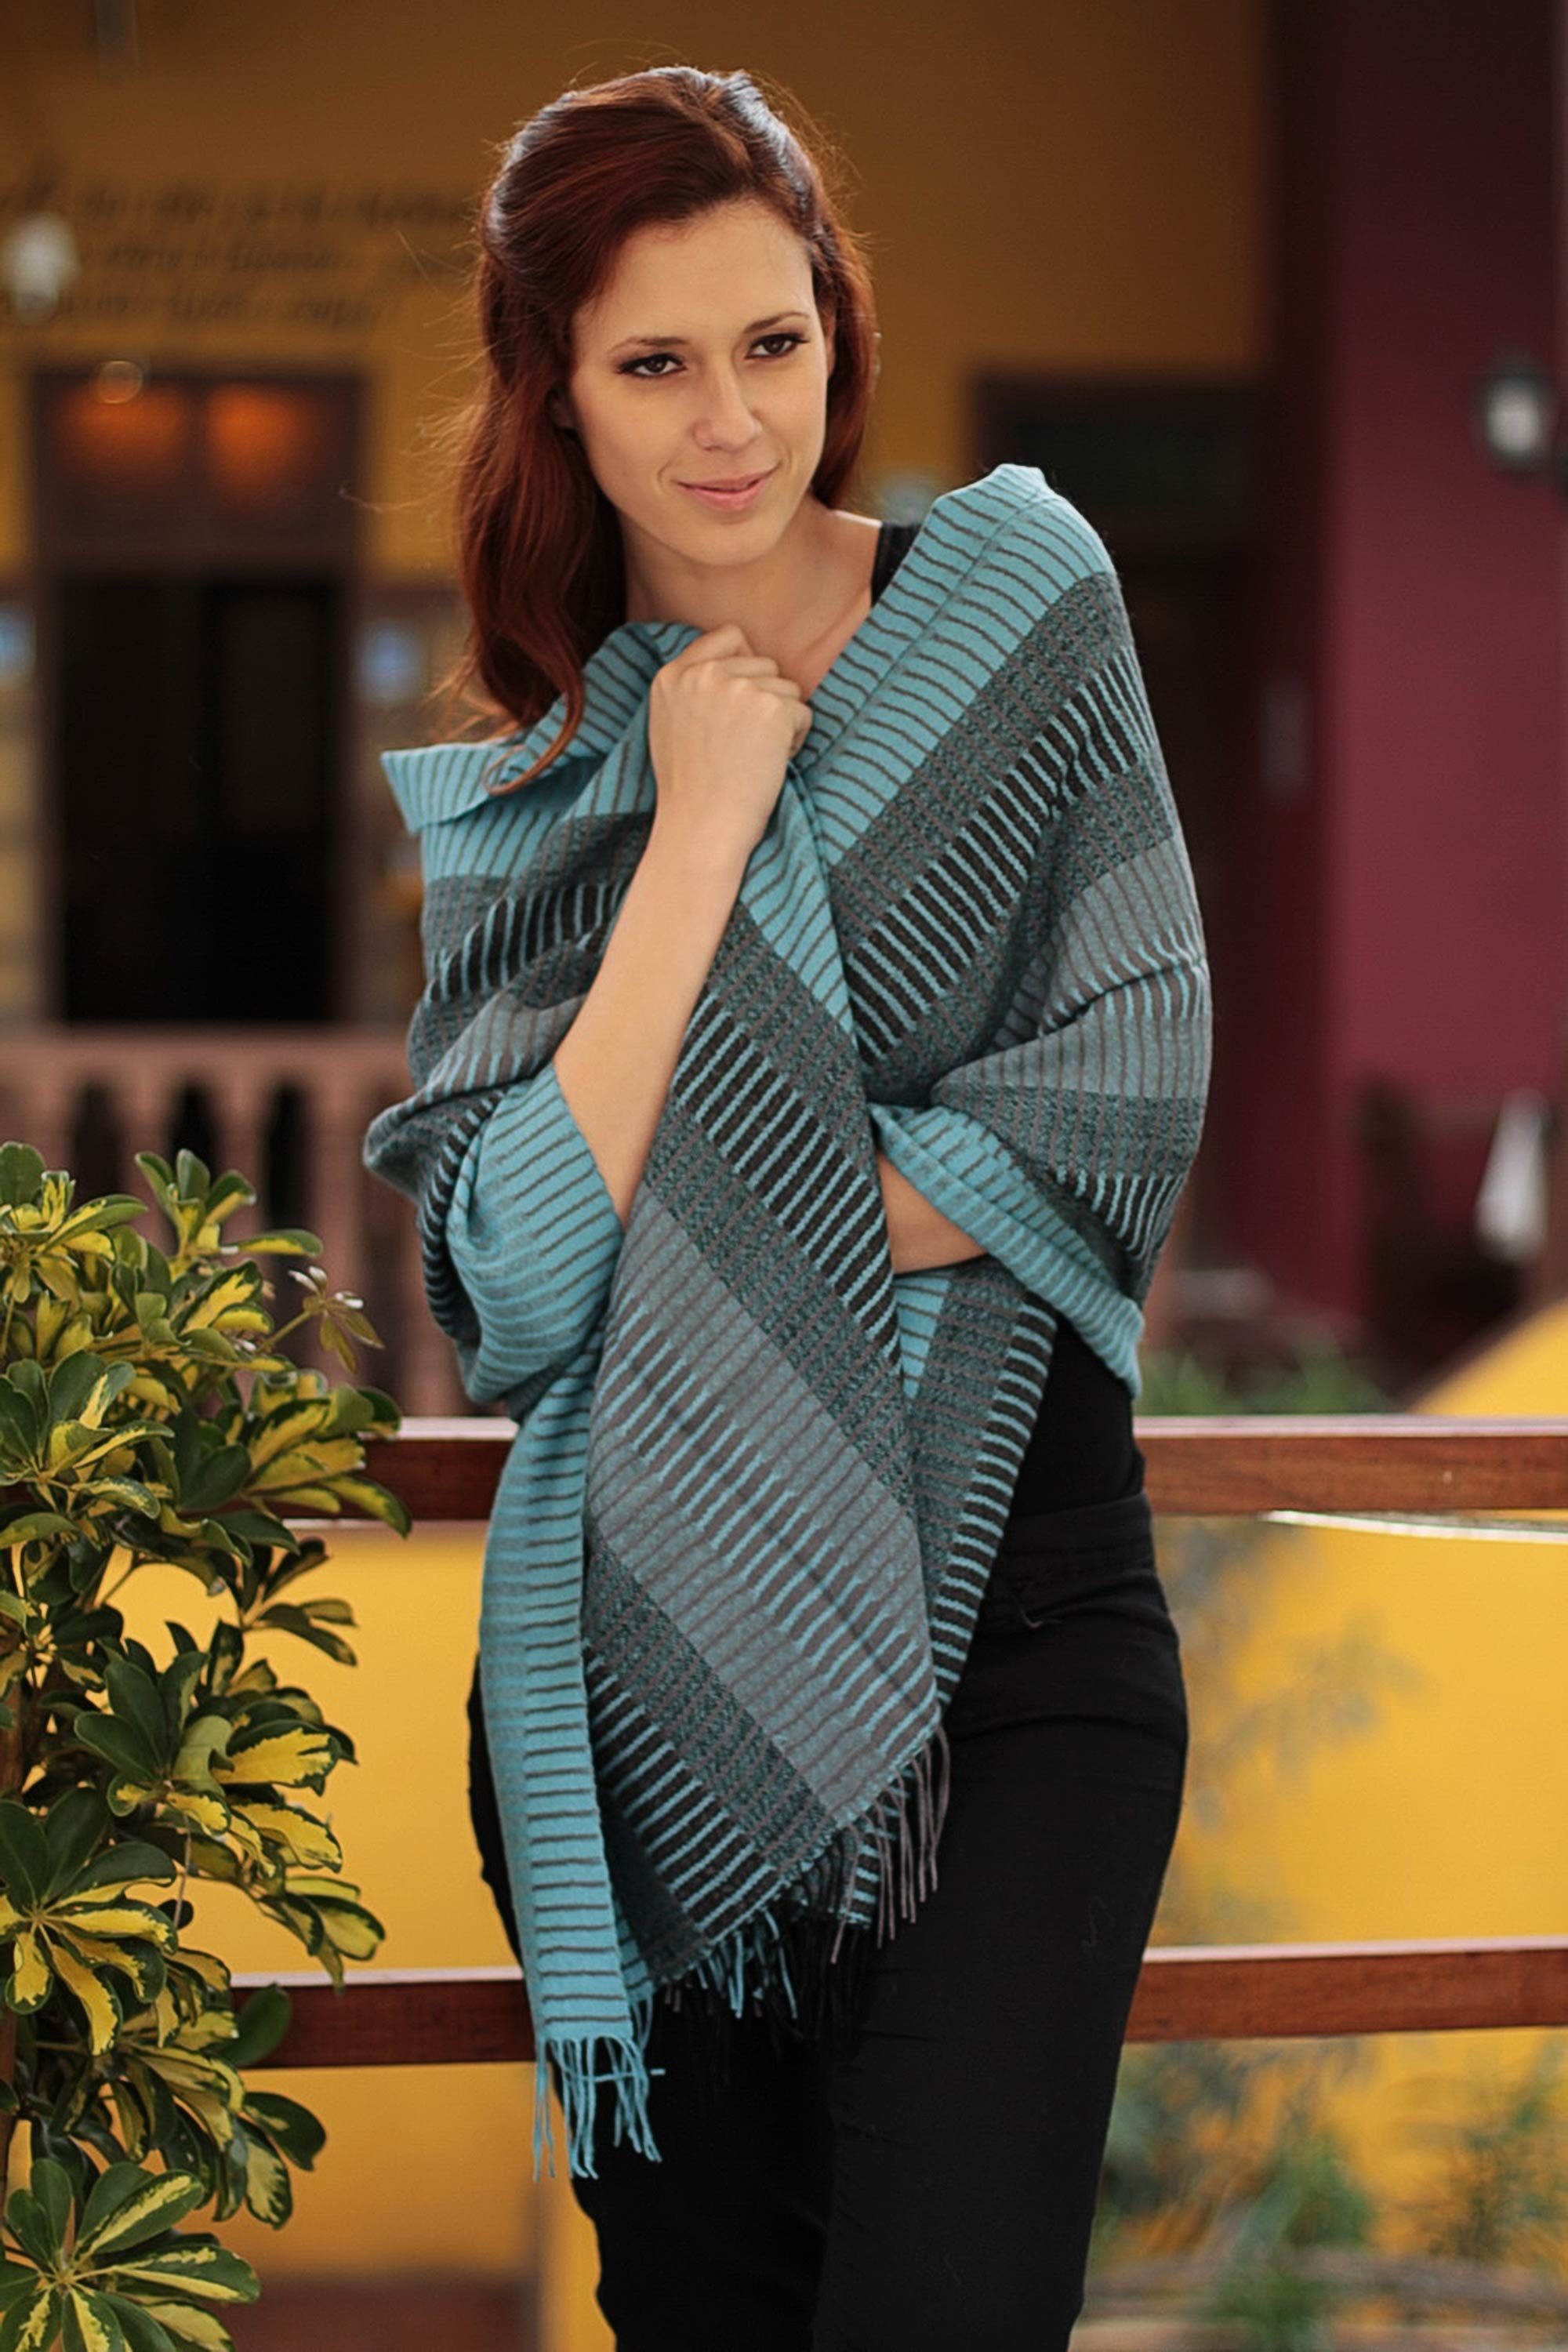 Turquoise Whisper Peruvian Alpaca Wool Patterned Shawl Handmade fair trade look cool and stay warm Stylish & Practical Winter Accessories